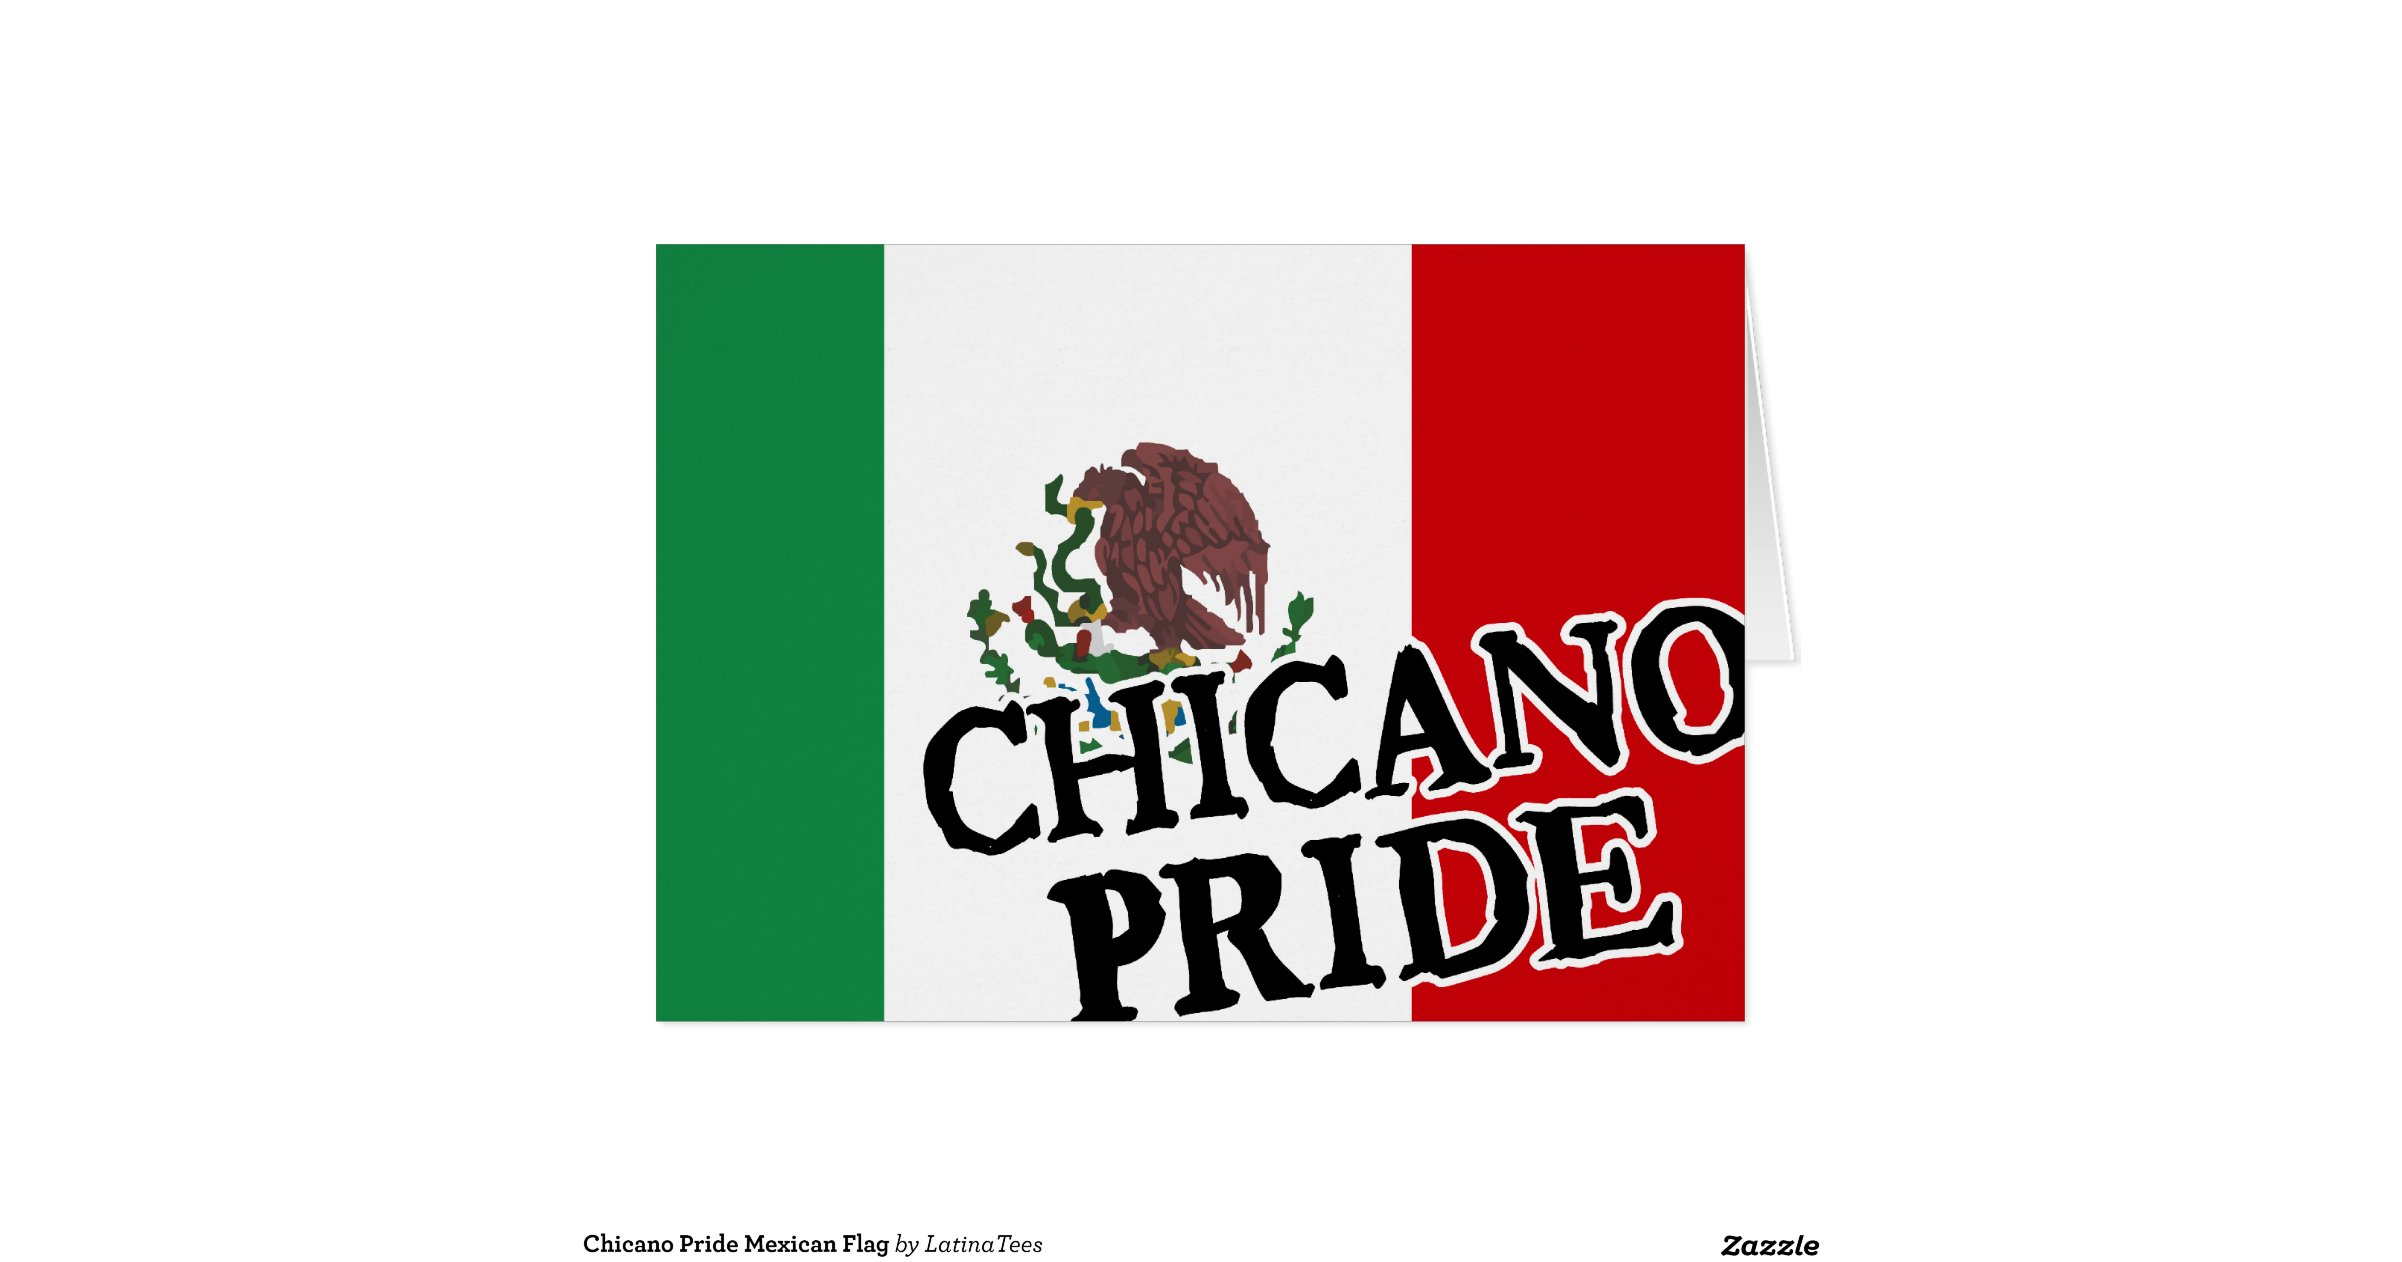 Chicano pride mexican flag greeting card zazzle - Chicano pride images ...